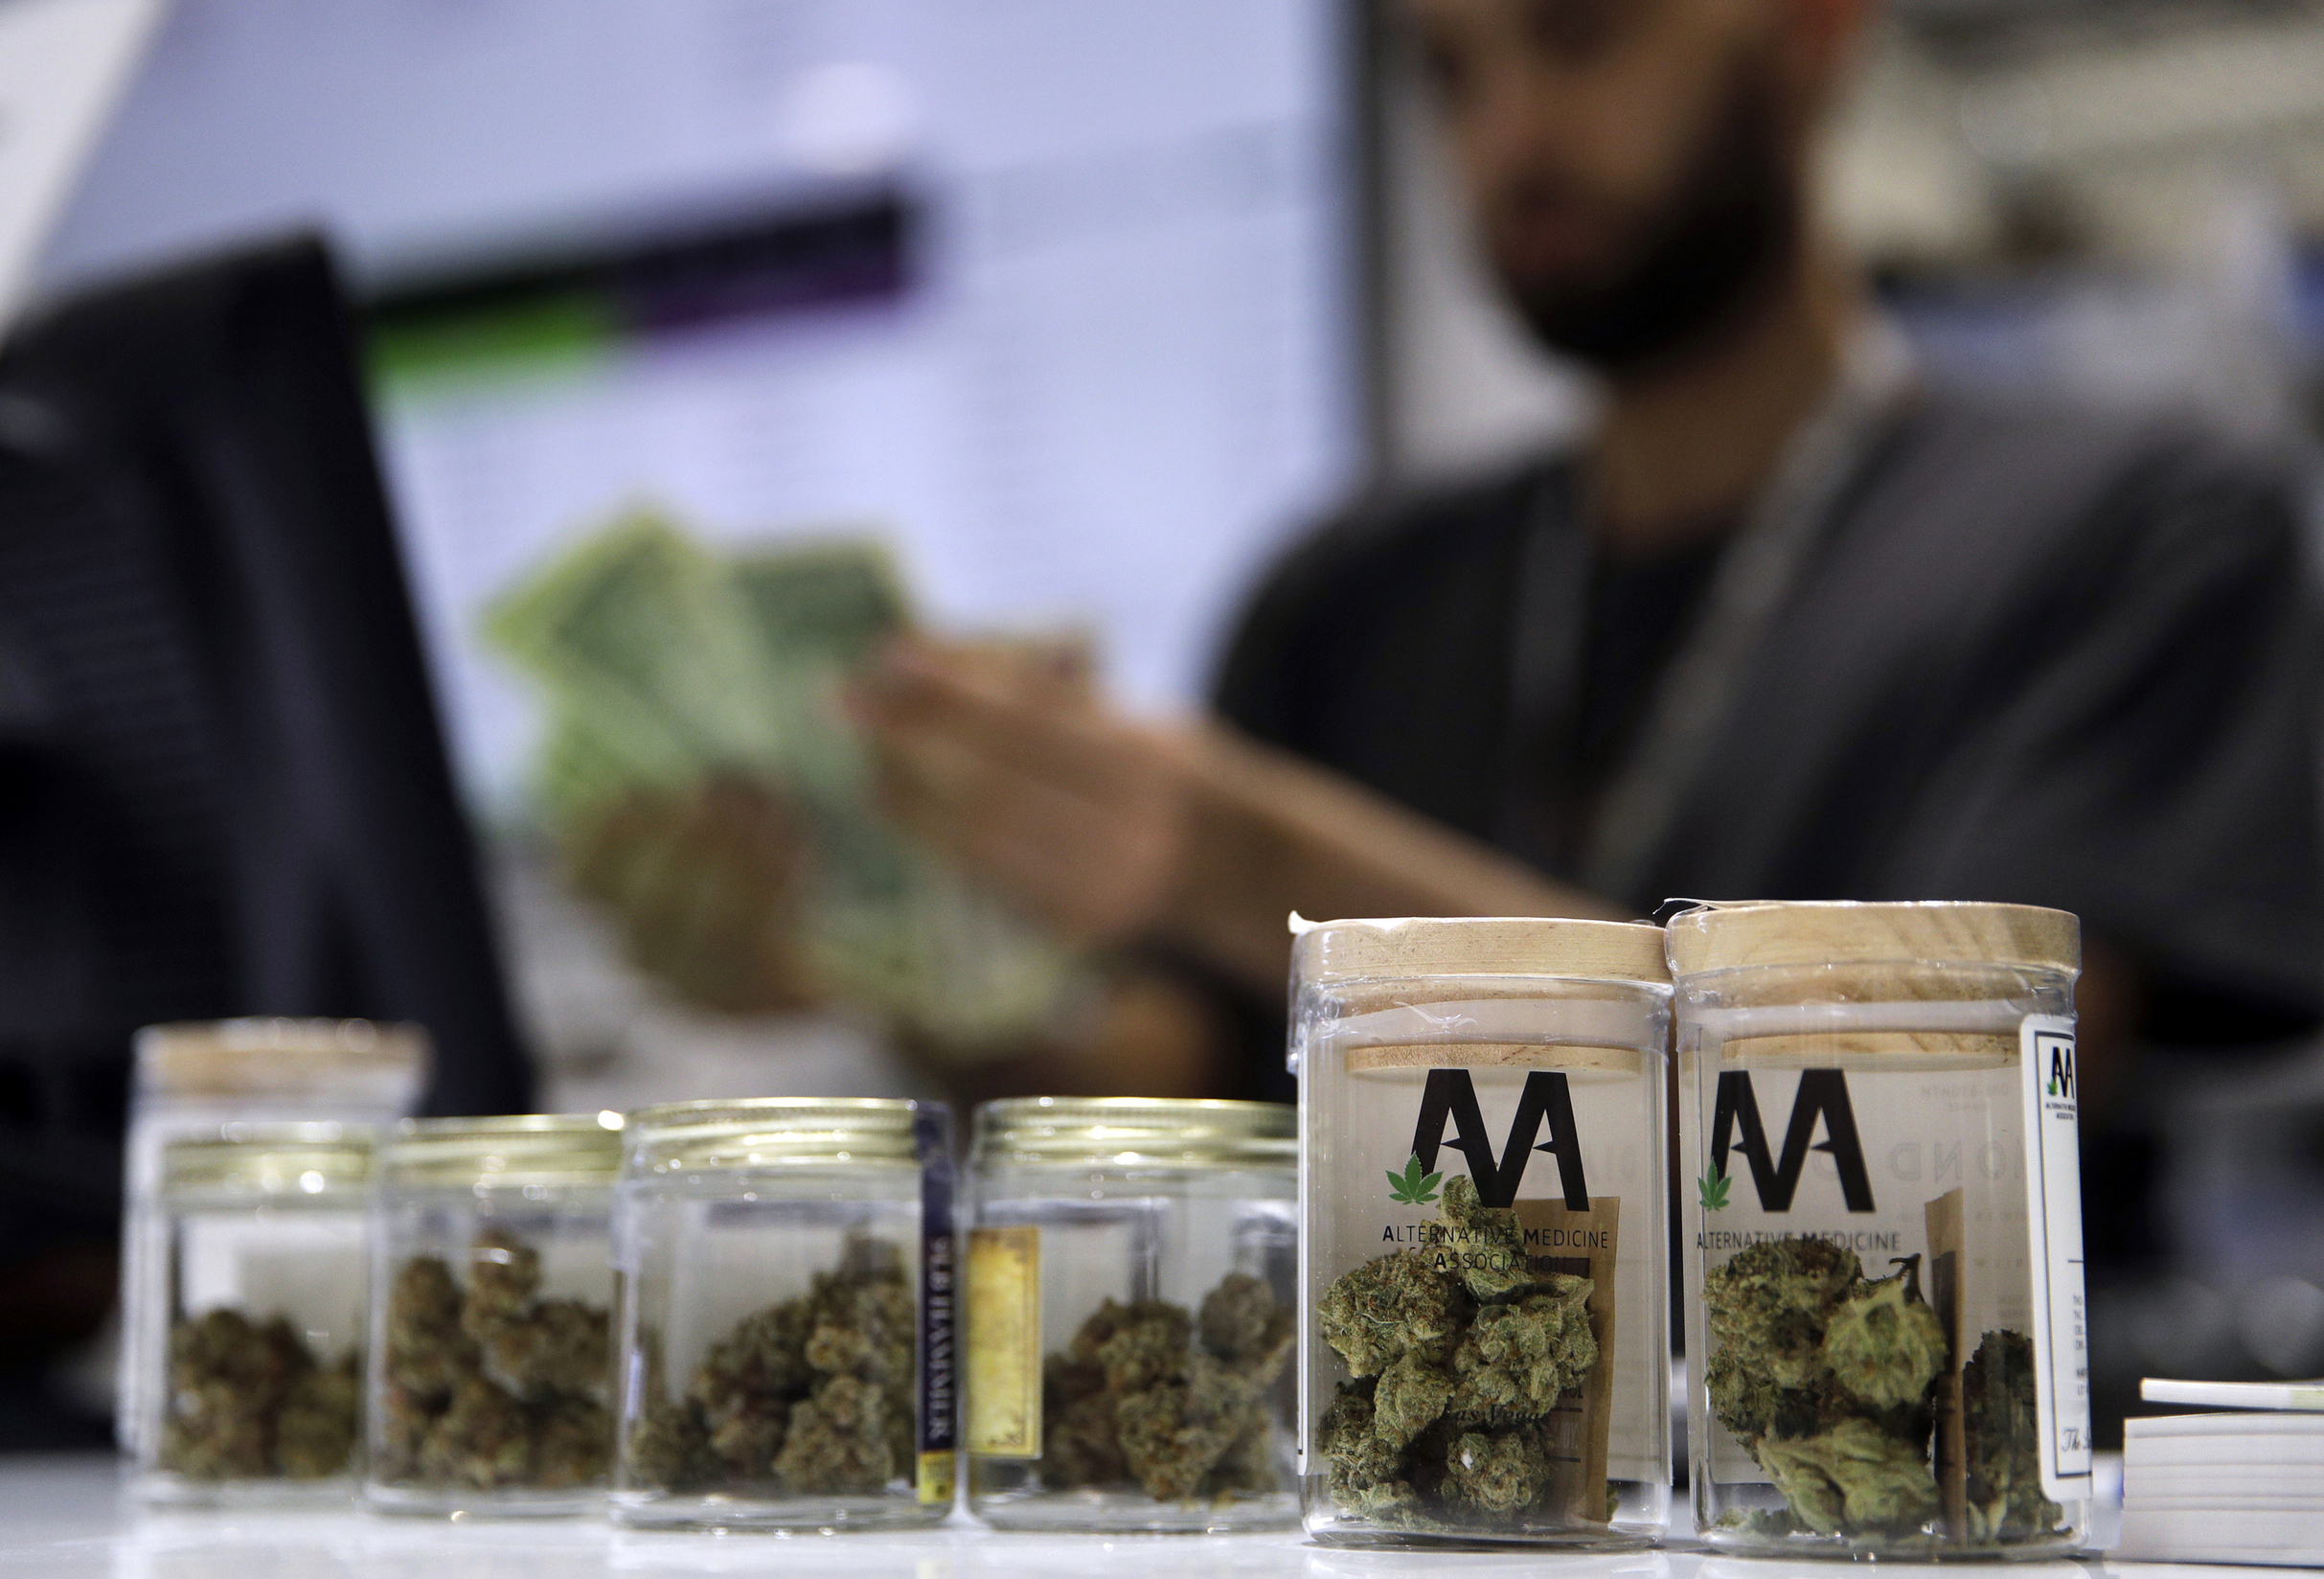 Existing operators of some of Illinois' medical cannabis dispensaries will take part in a lottery Friday to determine where they will sell recreational pot in Chicago.